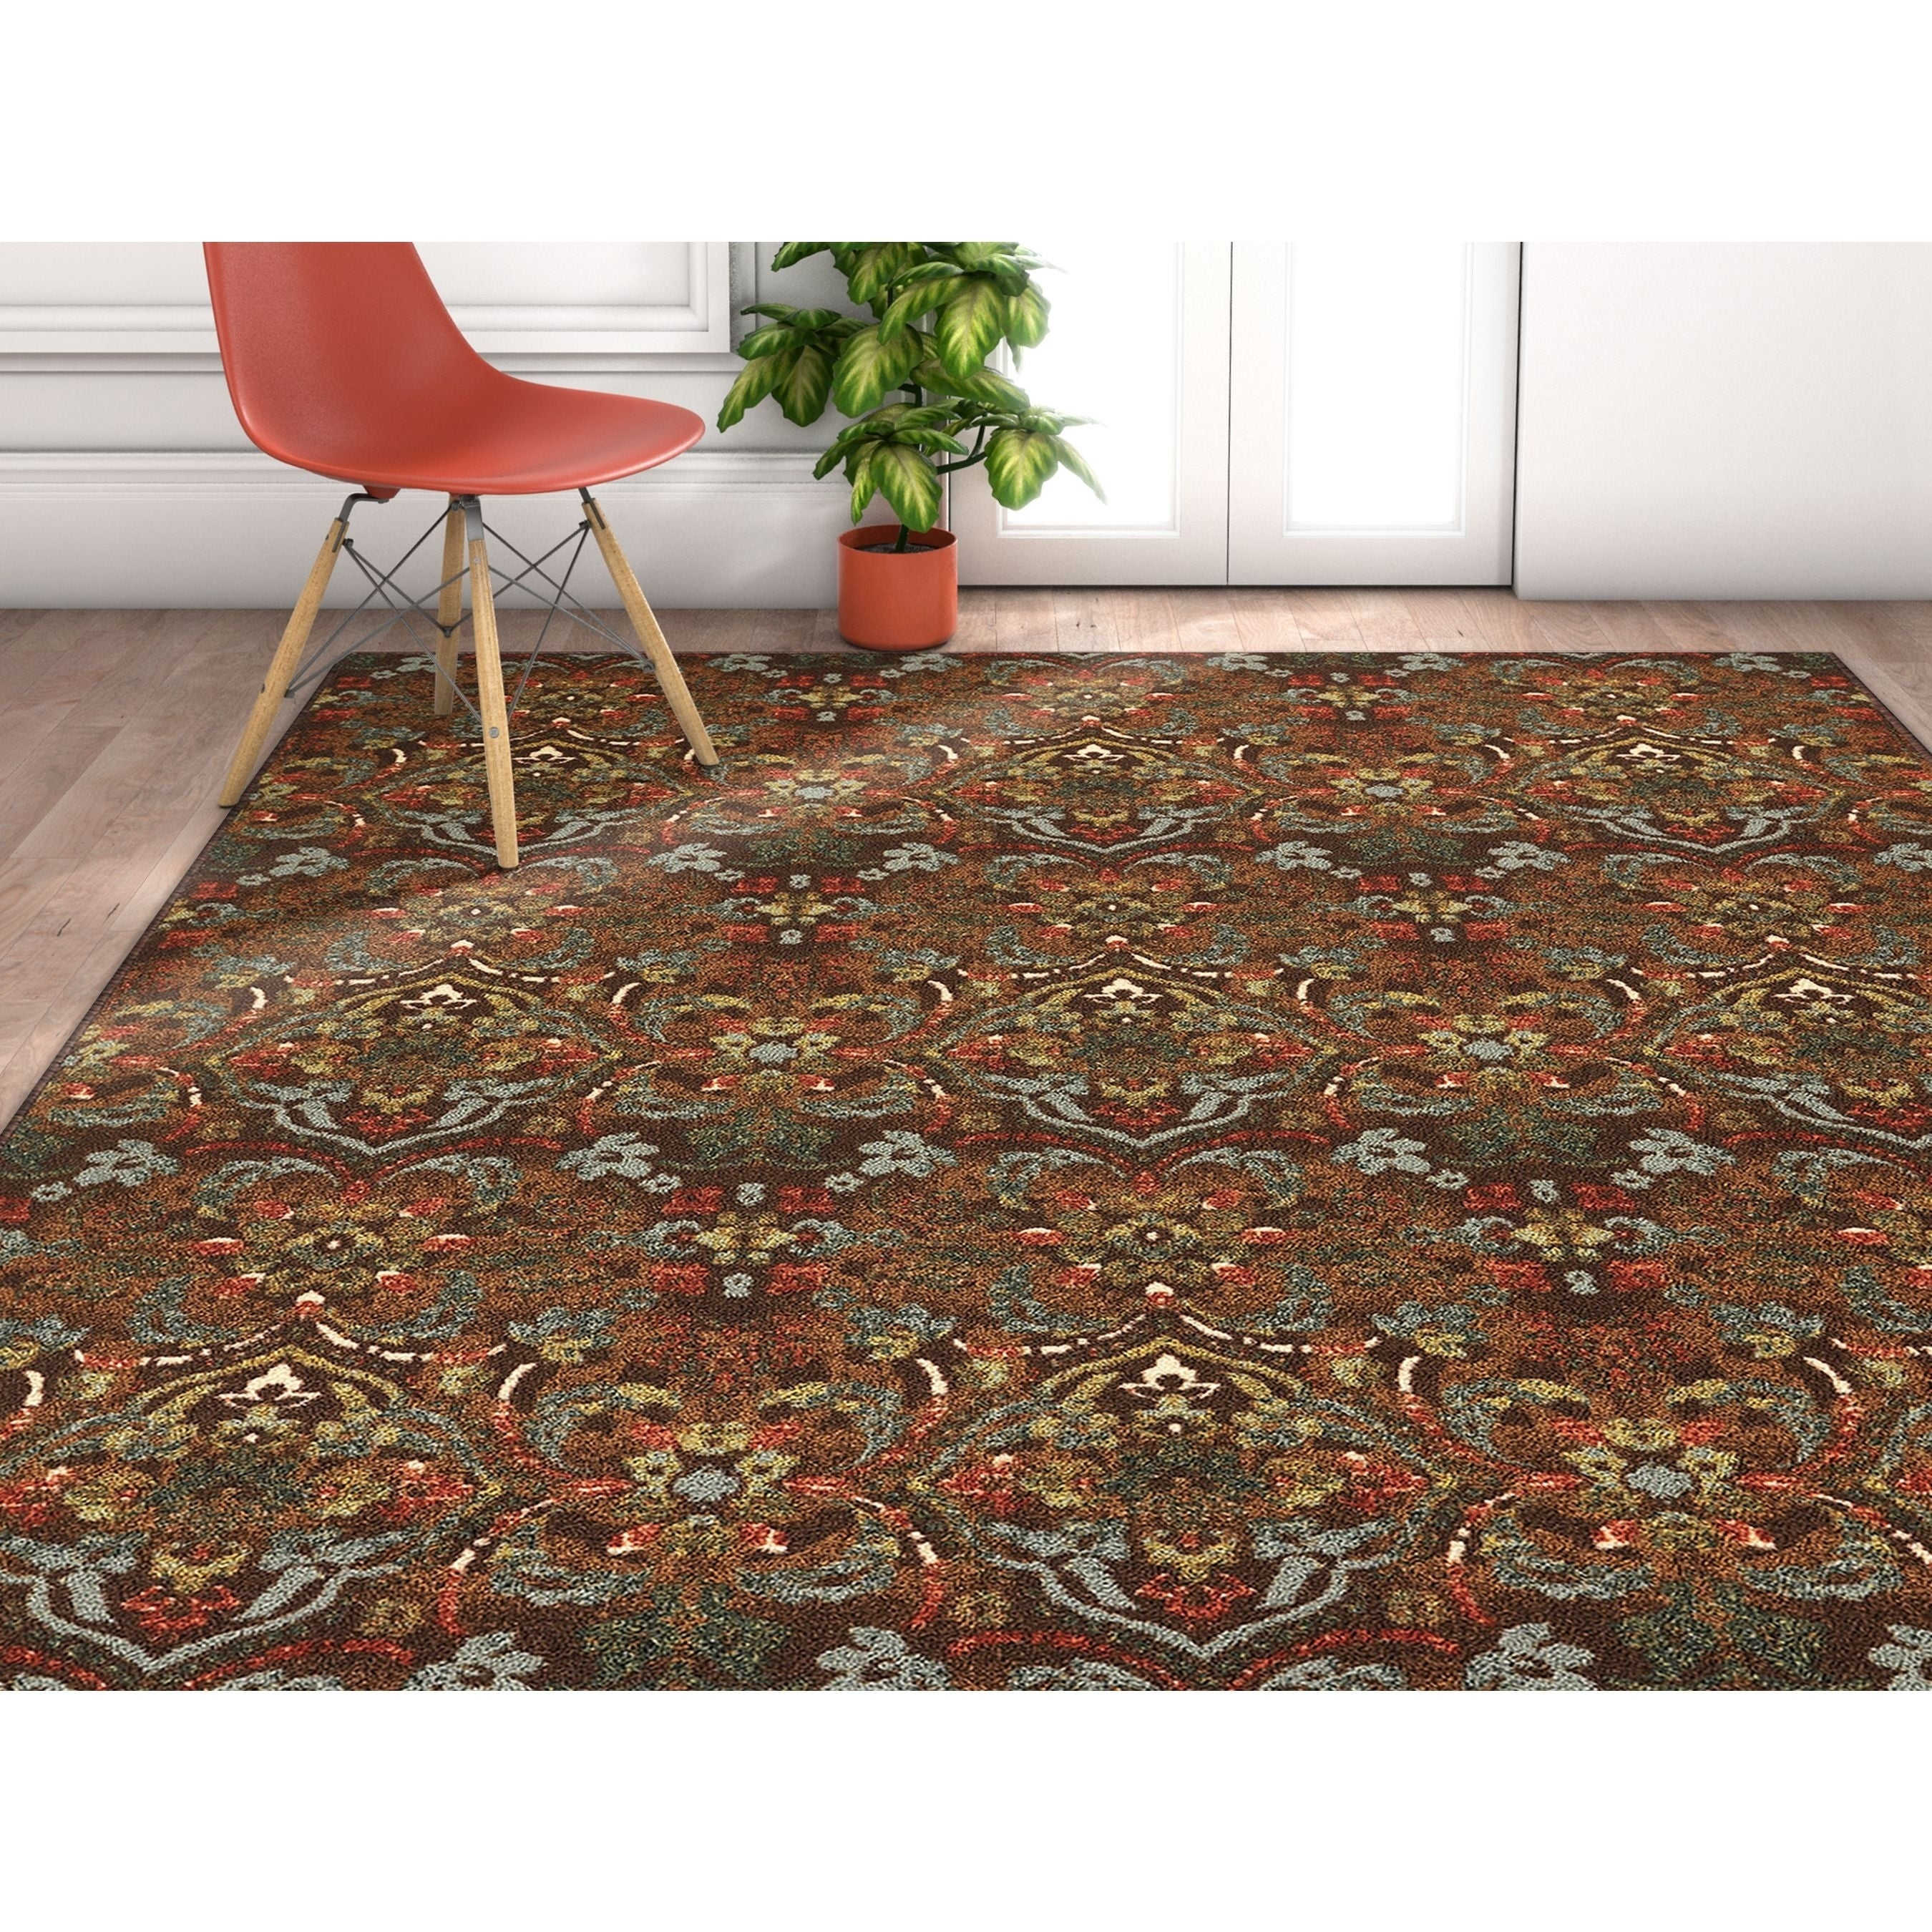 Well Woven Traditional Rustic Floral Brown Area Rug - 710 x 910 (Brown)